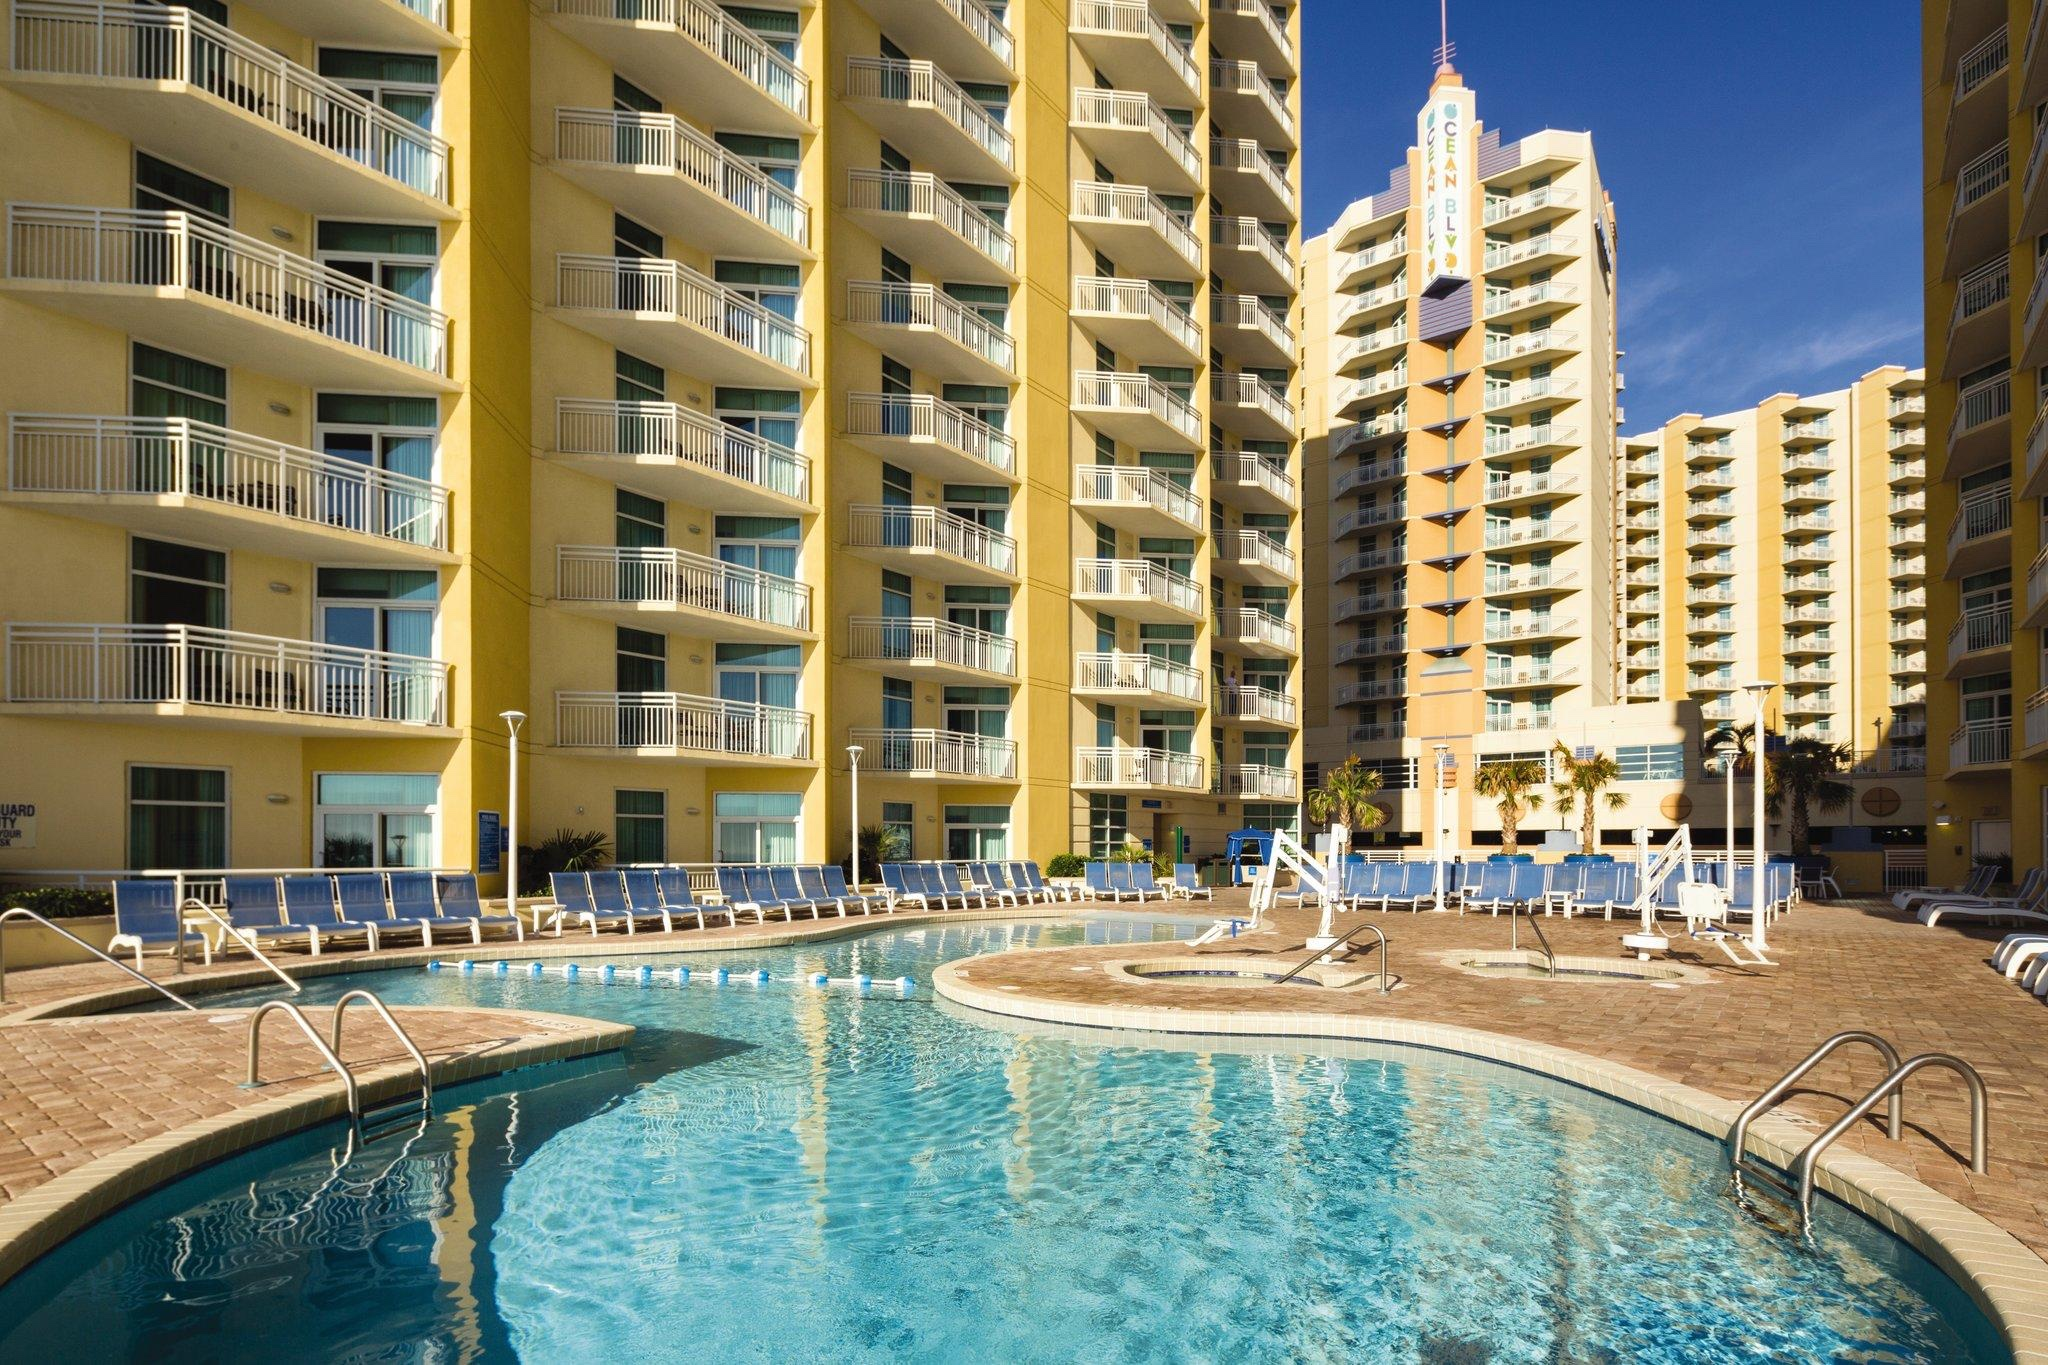 Apartment Ocean Blvd 1 Bedroom 1 Bathroom photo 20364418